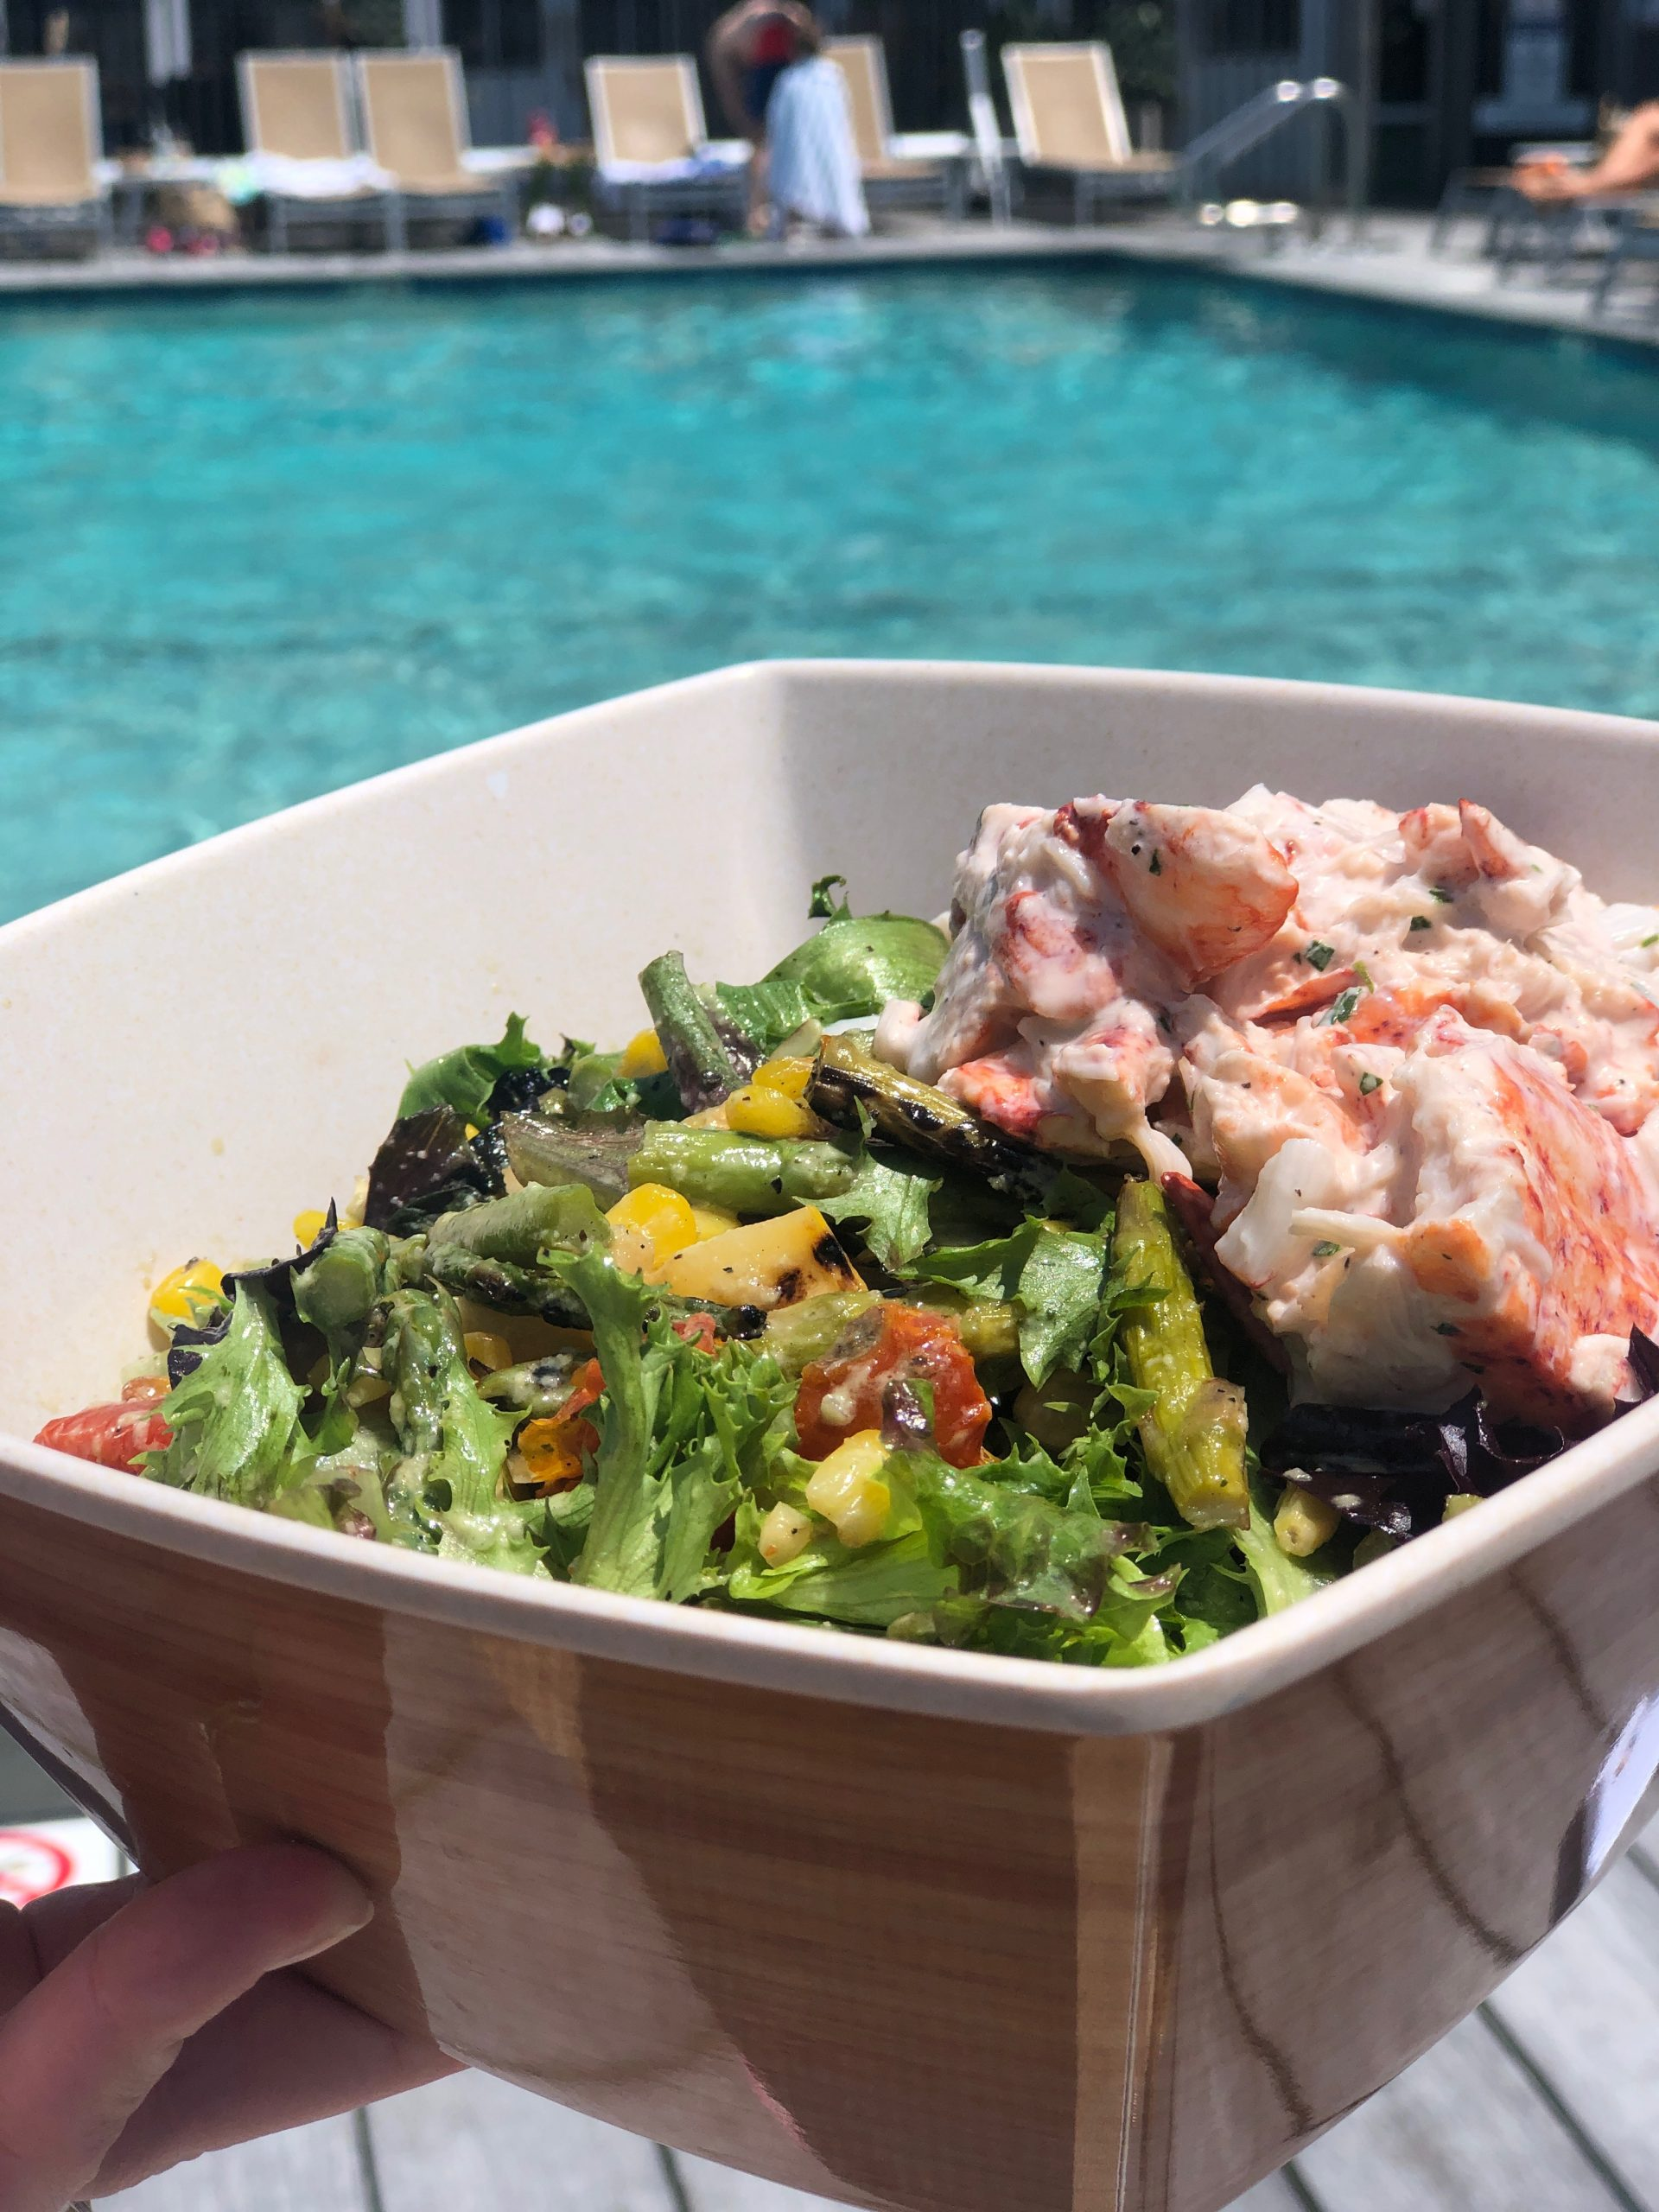 The Breeze Signature Salad topped with Lobster Salad at The Nantucket Hotel